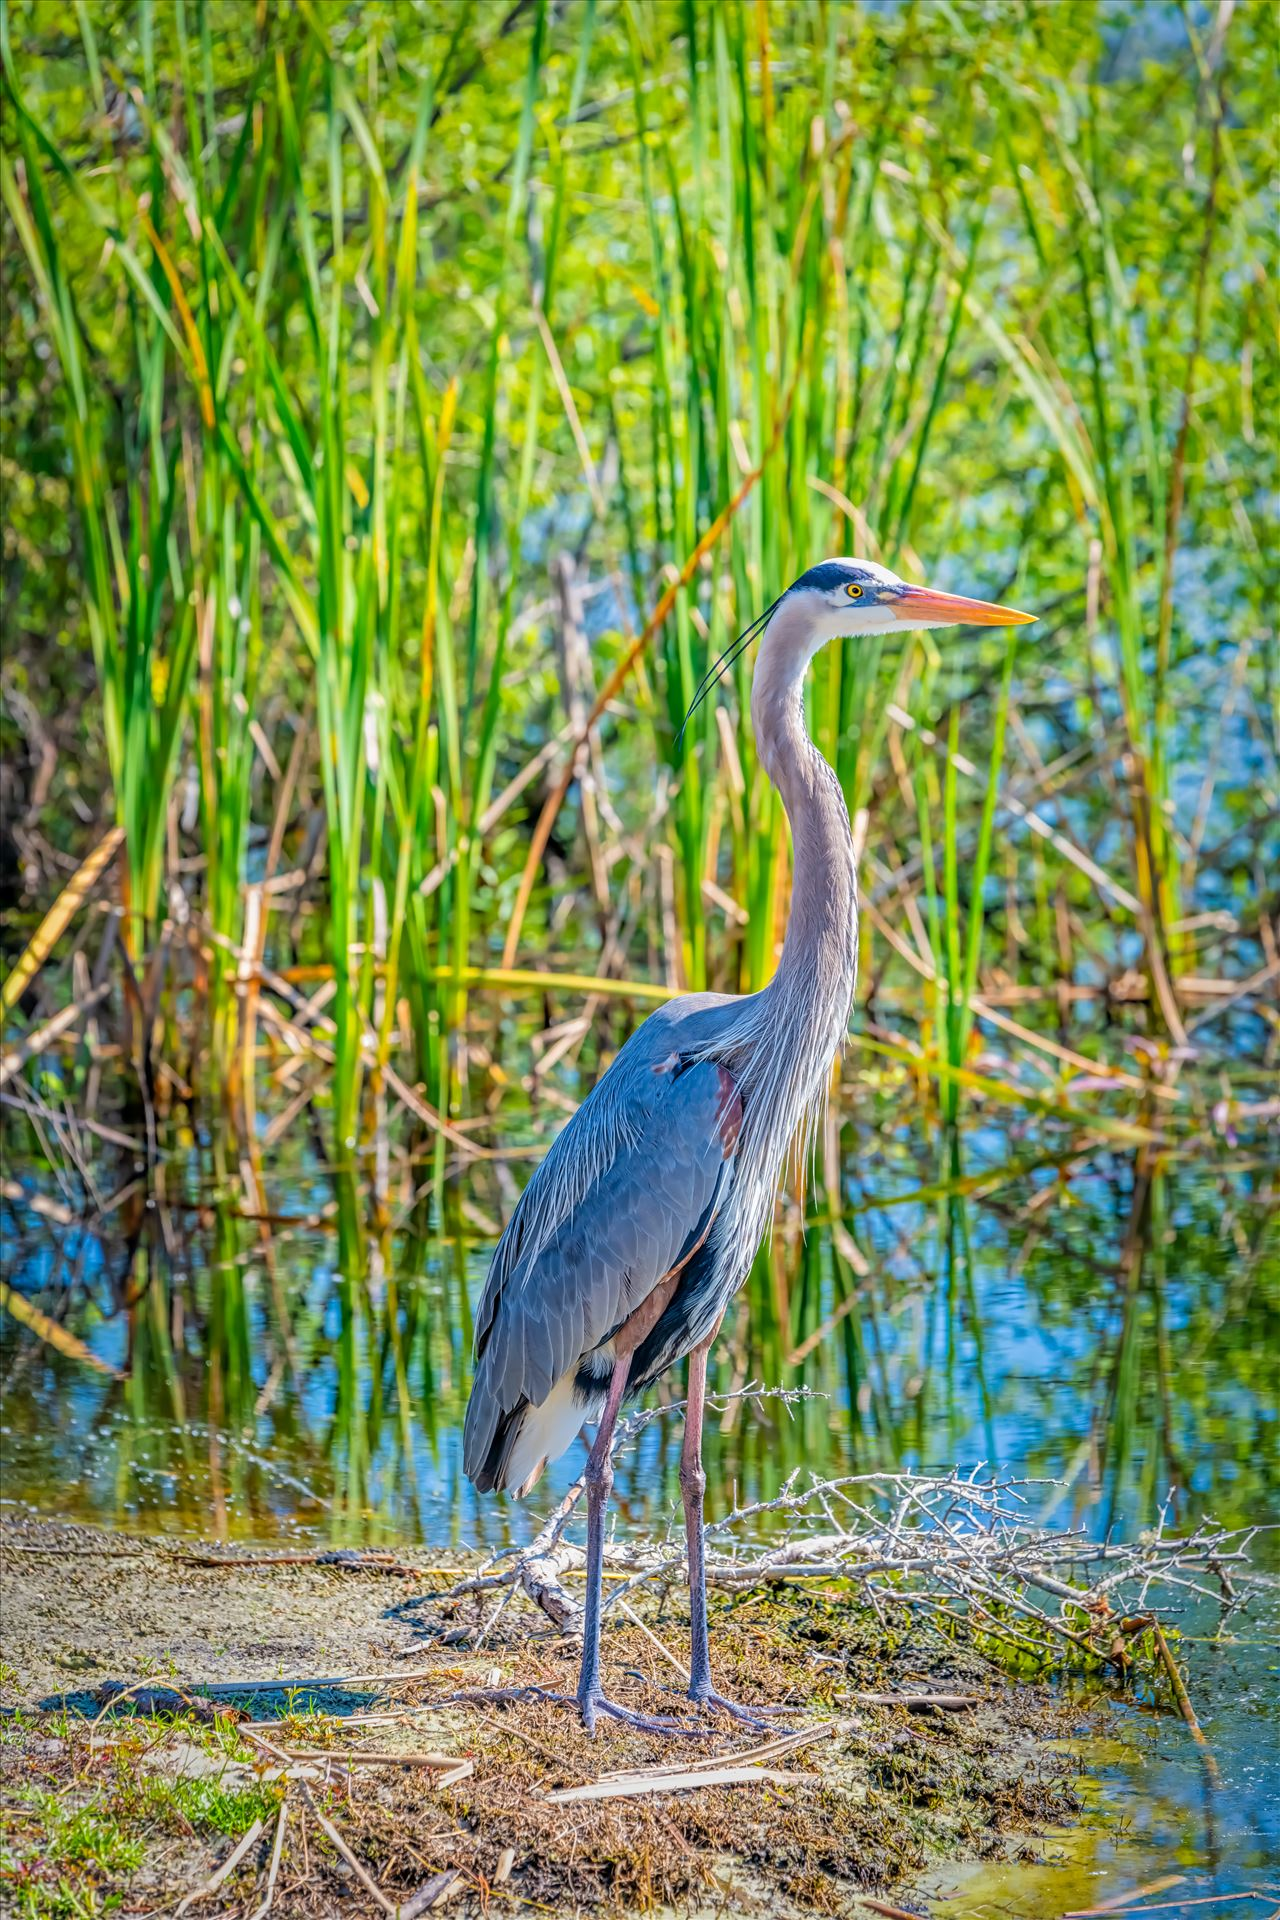 great blue heron great blue heron stand on bank of gator lake at St. Andrews State park, Panama City, Florida by Terry Kelly Photography